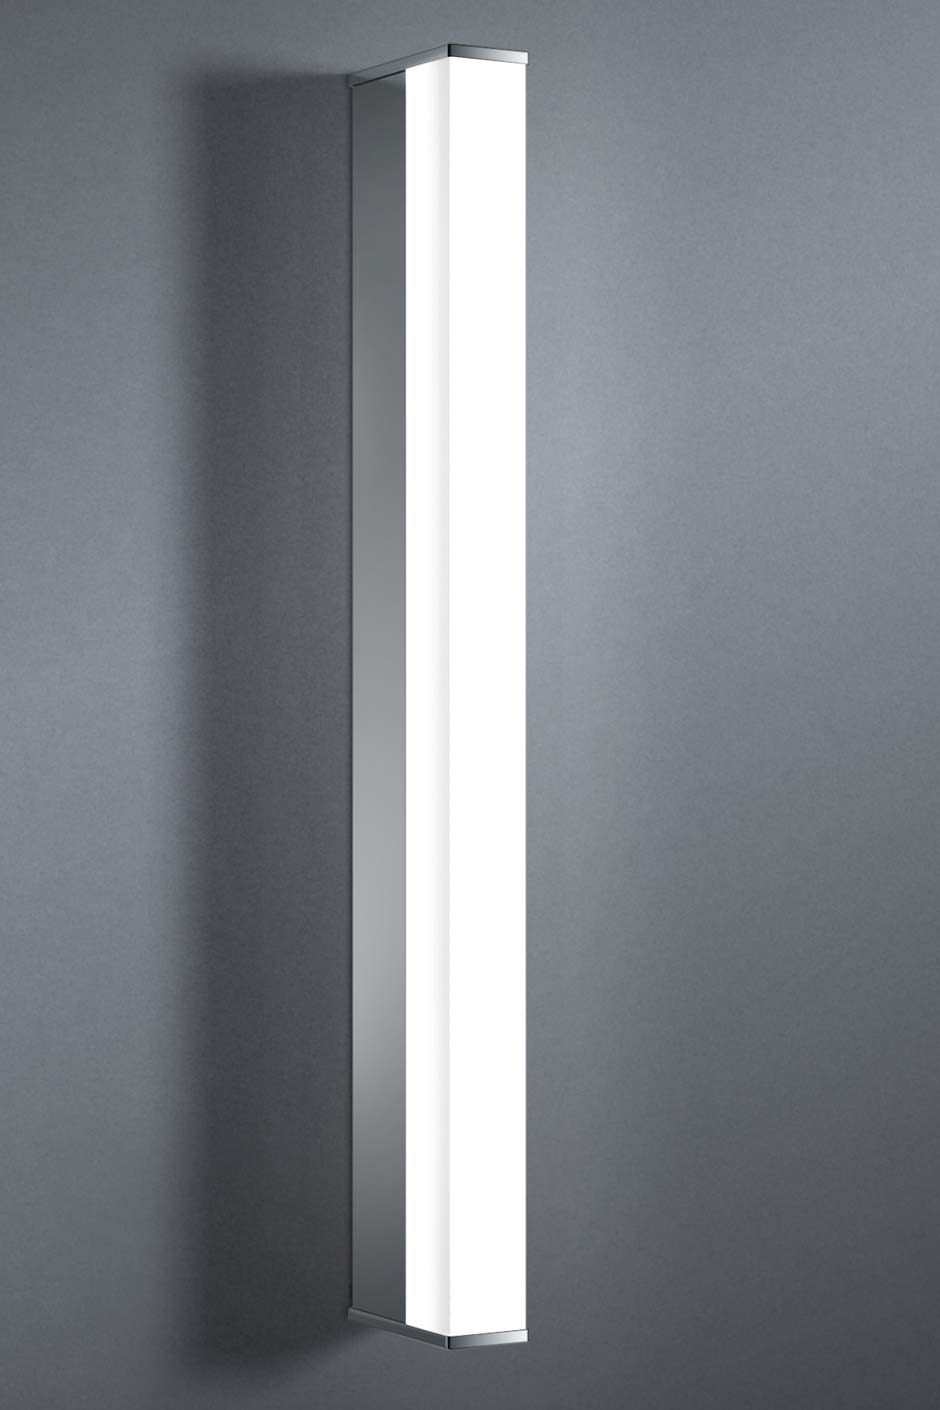 Pure e applique simple led 13w tube section carr e 60cm for Applique salle de bain 120 cm